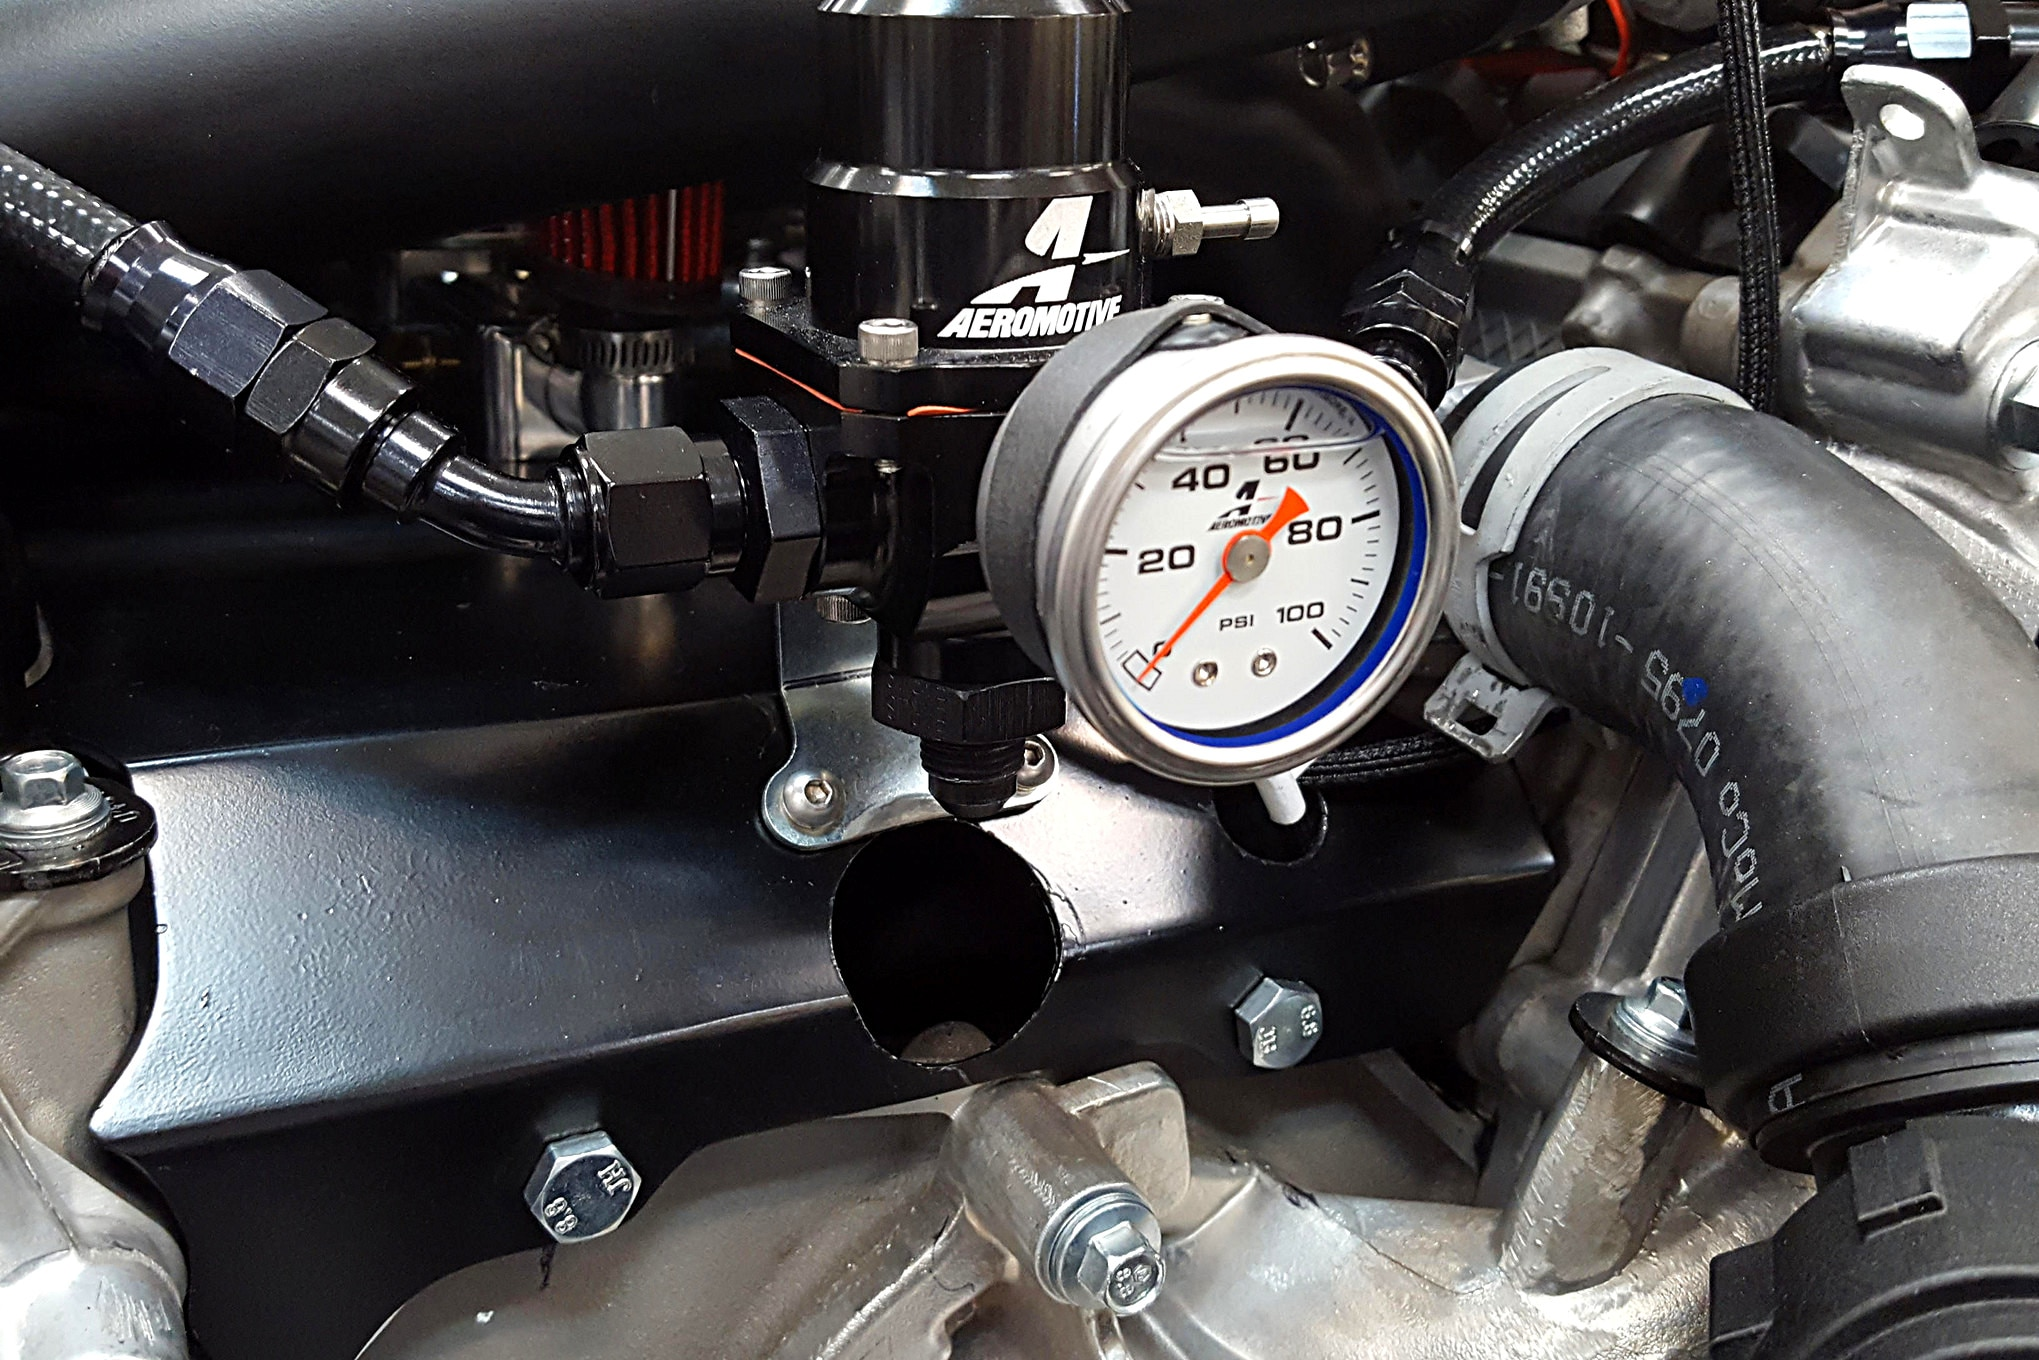 A critical fuel system component for EFI is the pressure regulator. HRBD installed an Aeromotive adjustable regulator to ensure fuel pressure stays constant.